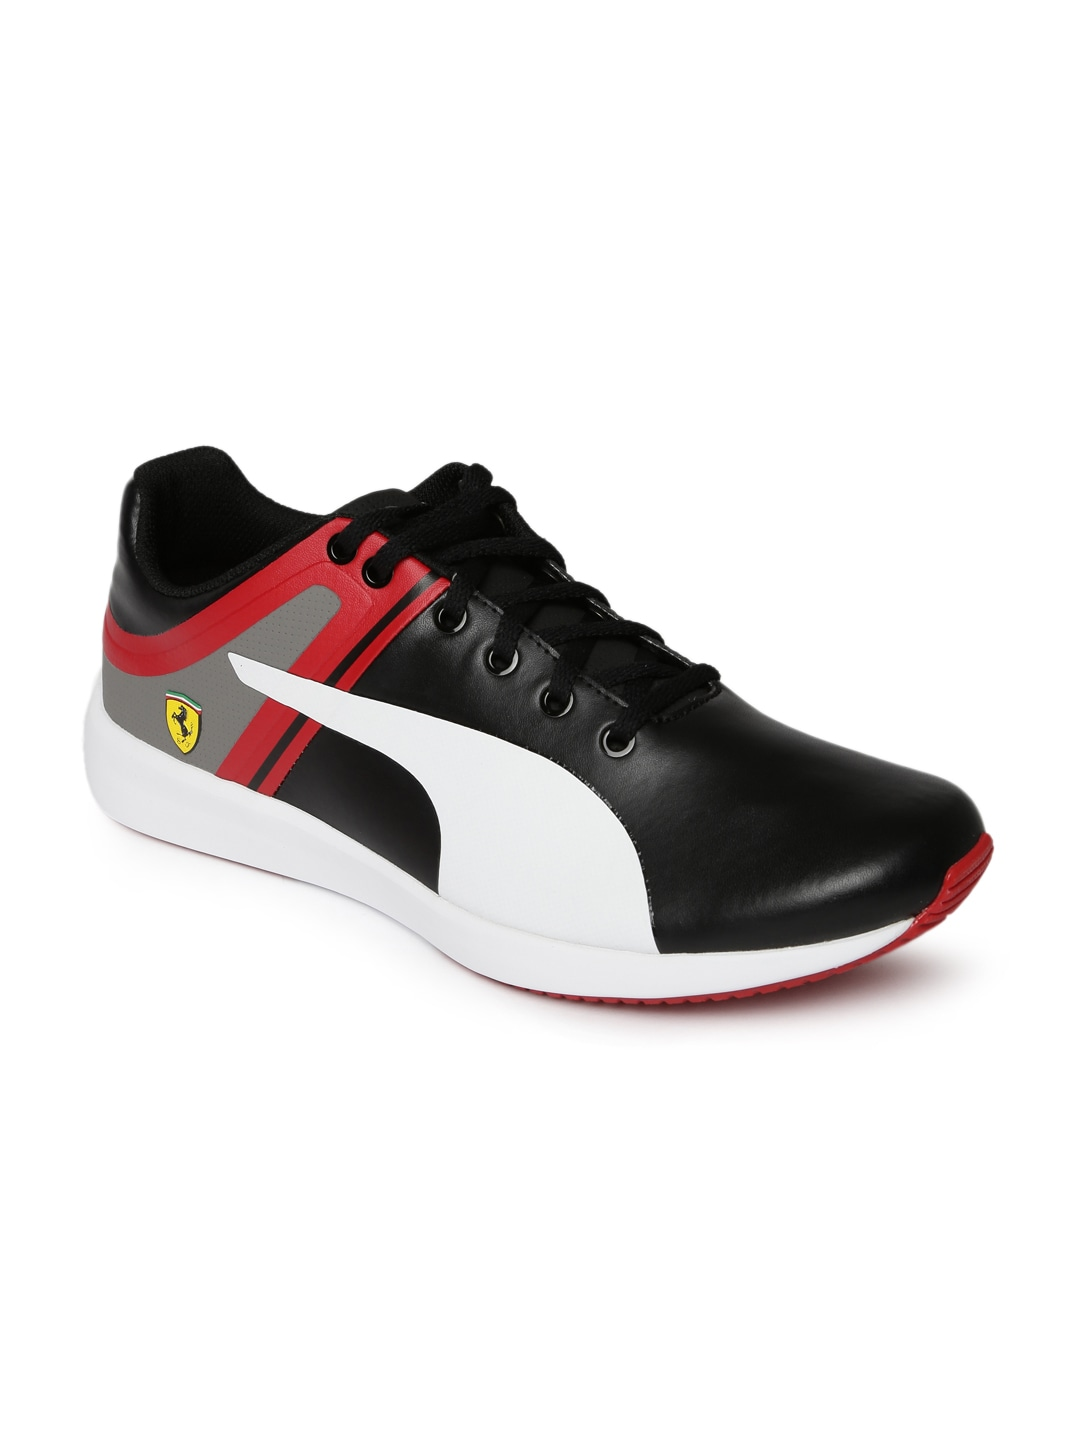 puma shoes black and white in women s prison association jobs